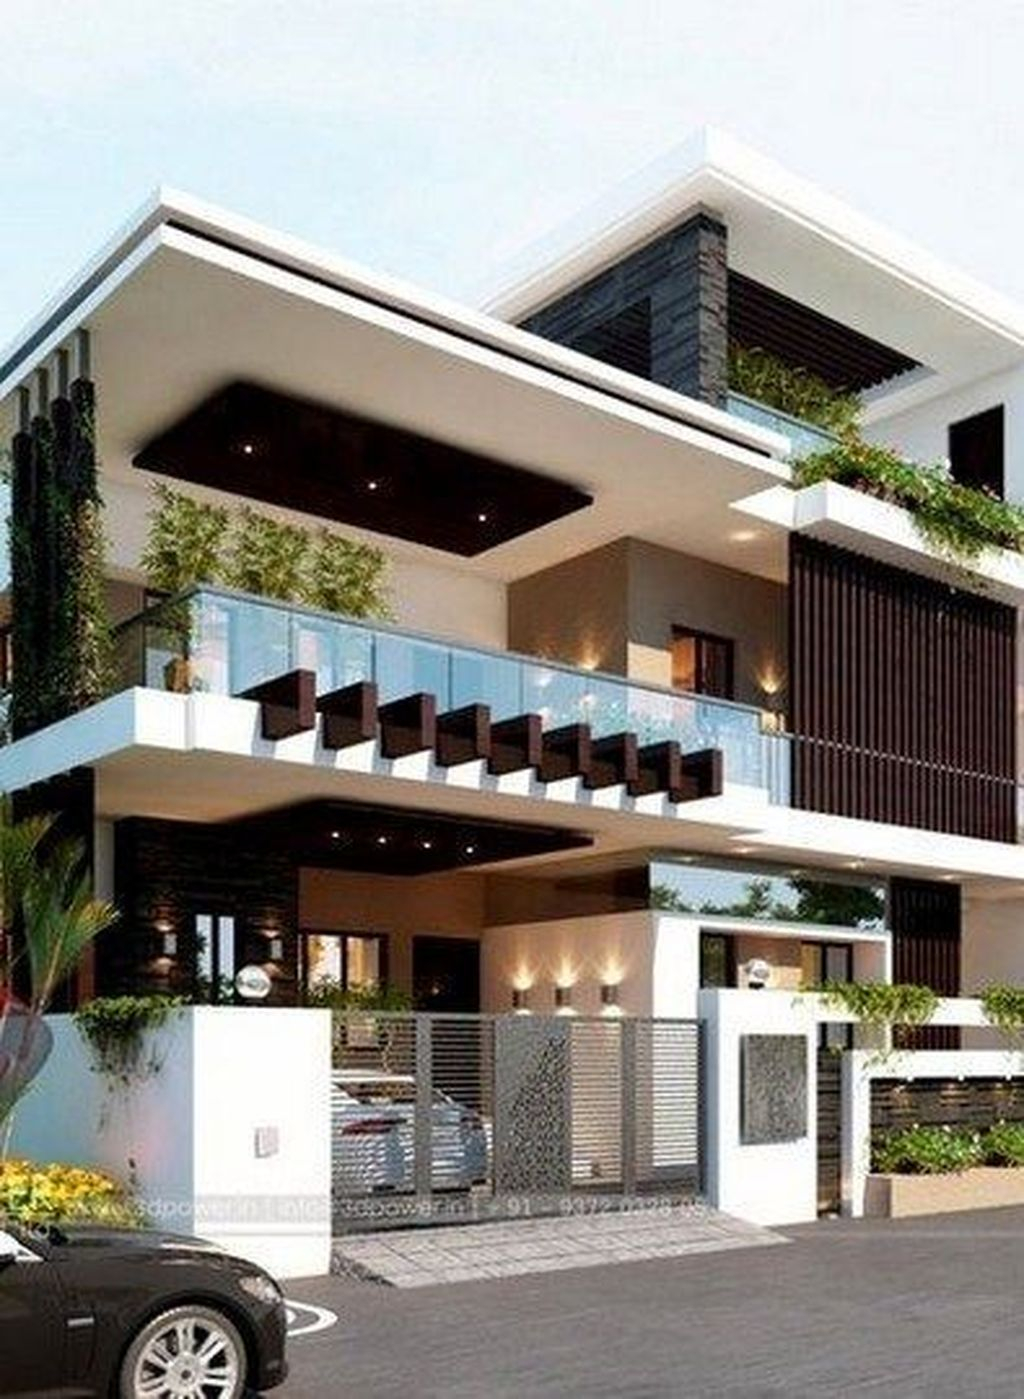 Best Minimalist Home Exterior Architecture Design Ideas To Try Today 18